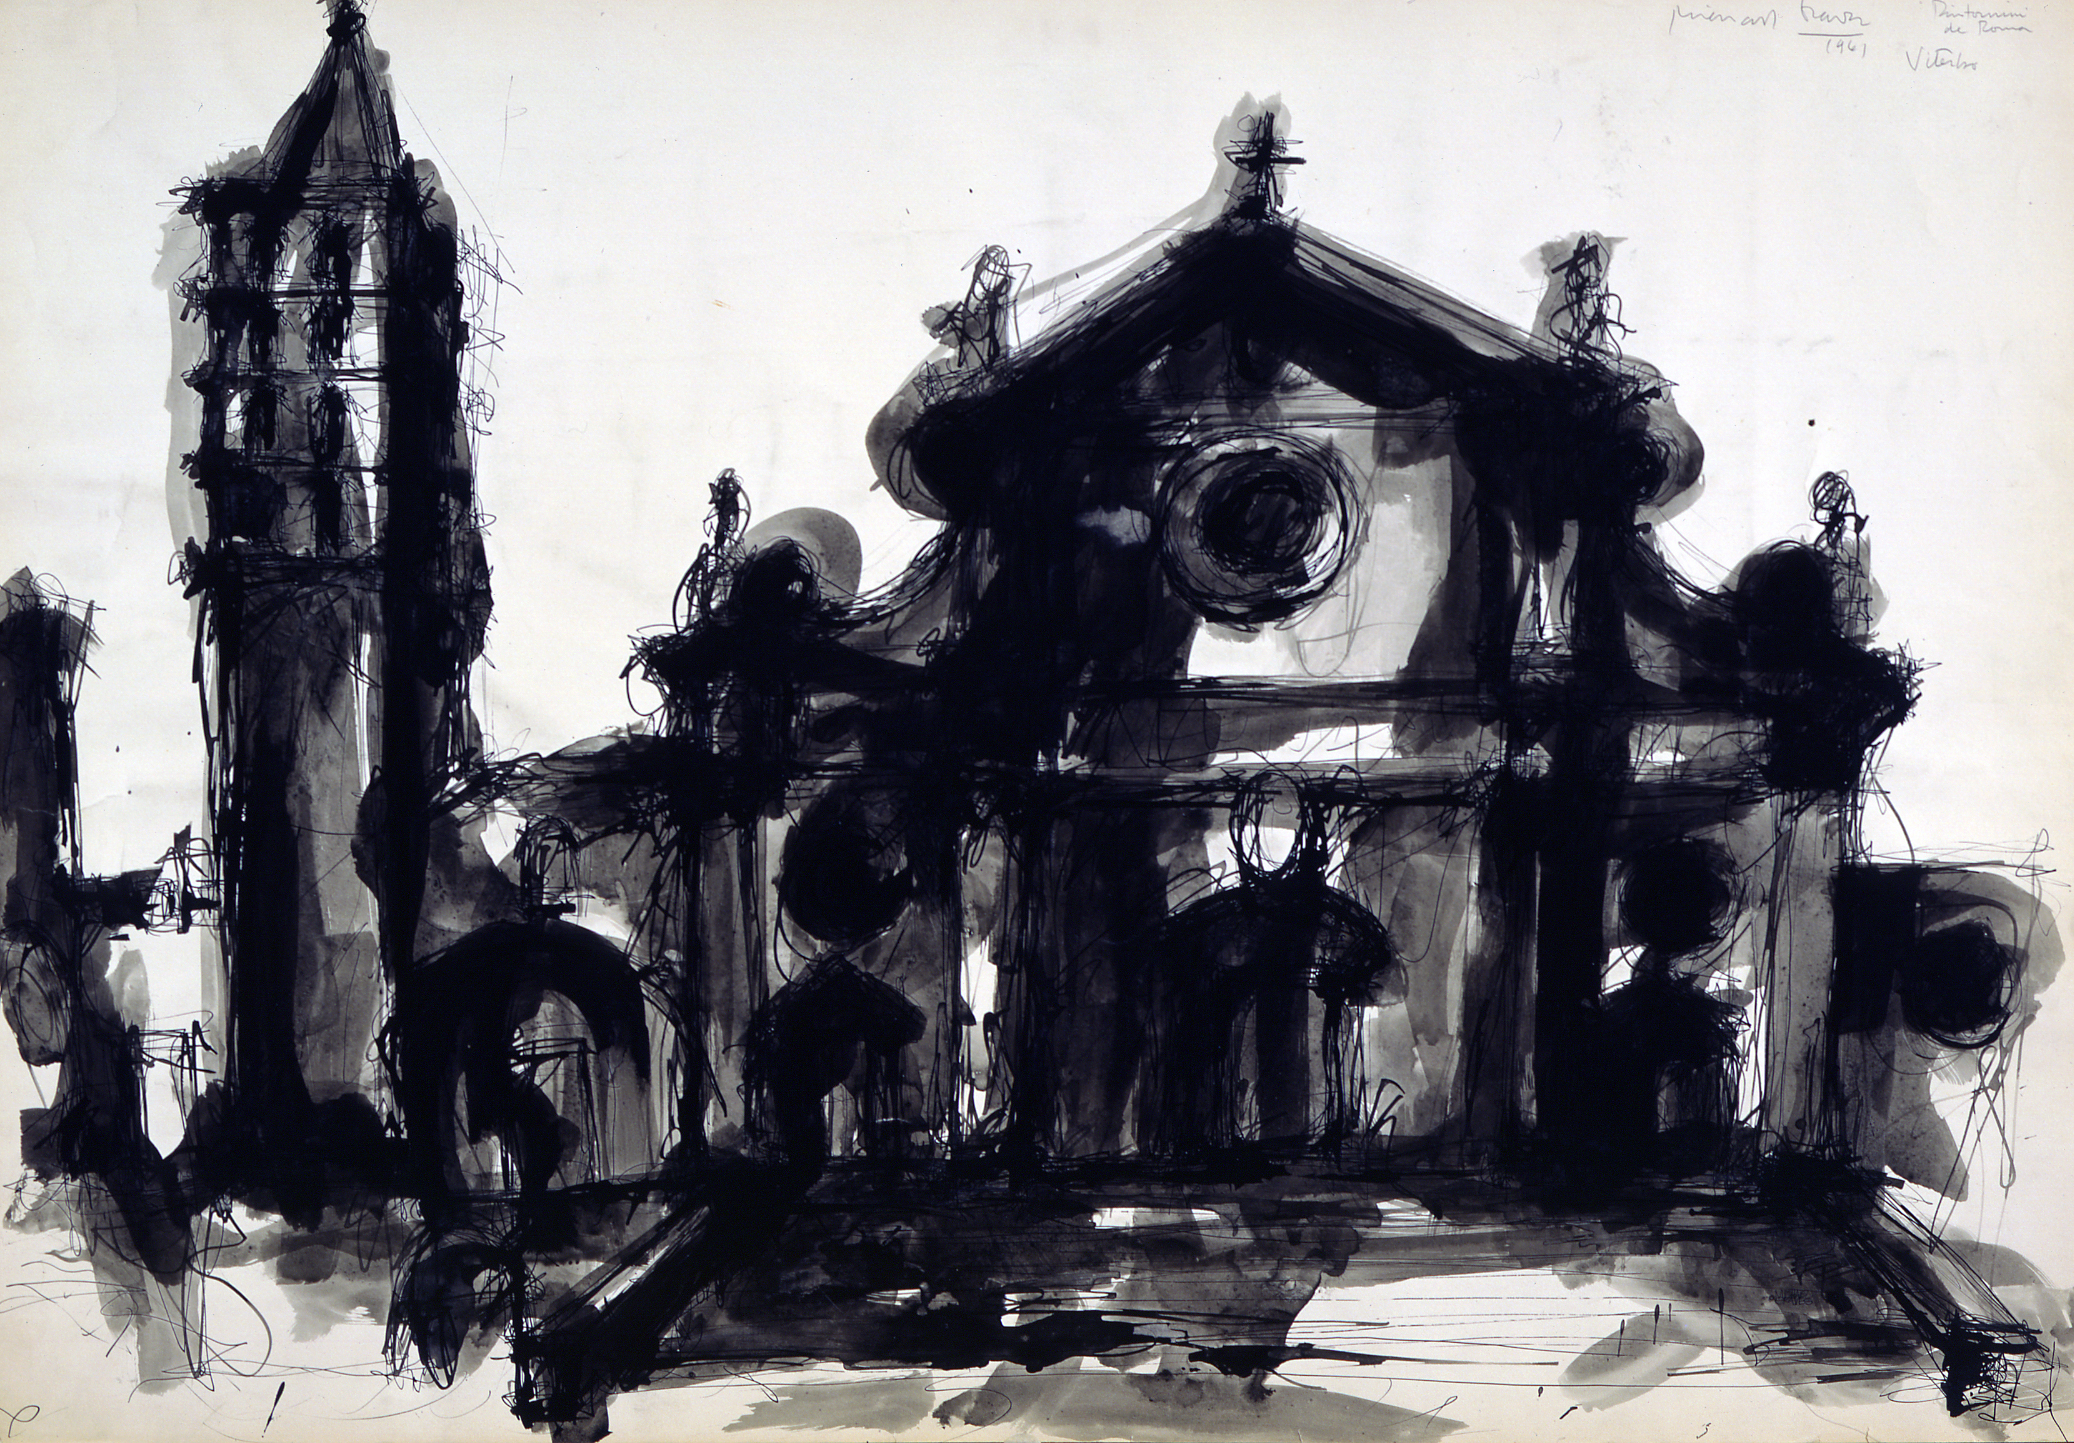 Church and Campanile: Michael Graves